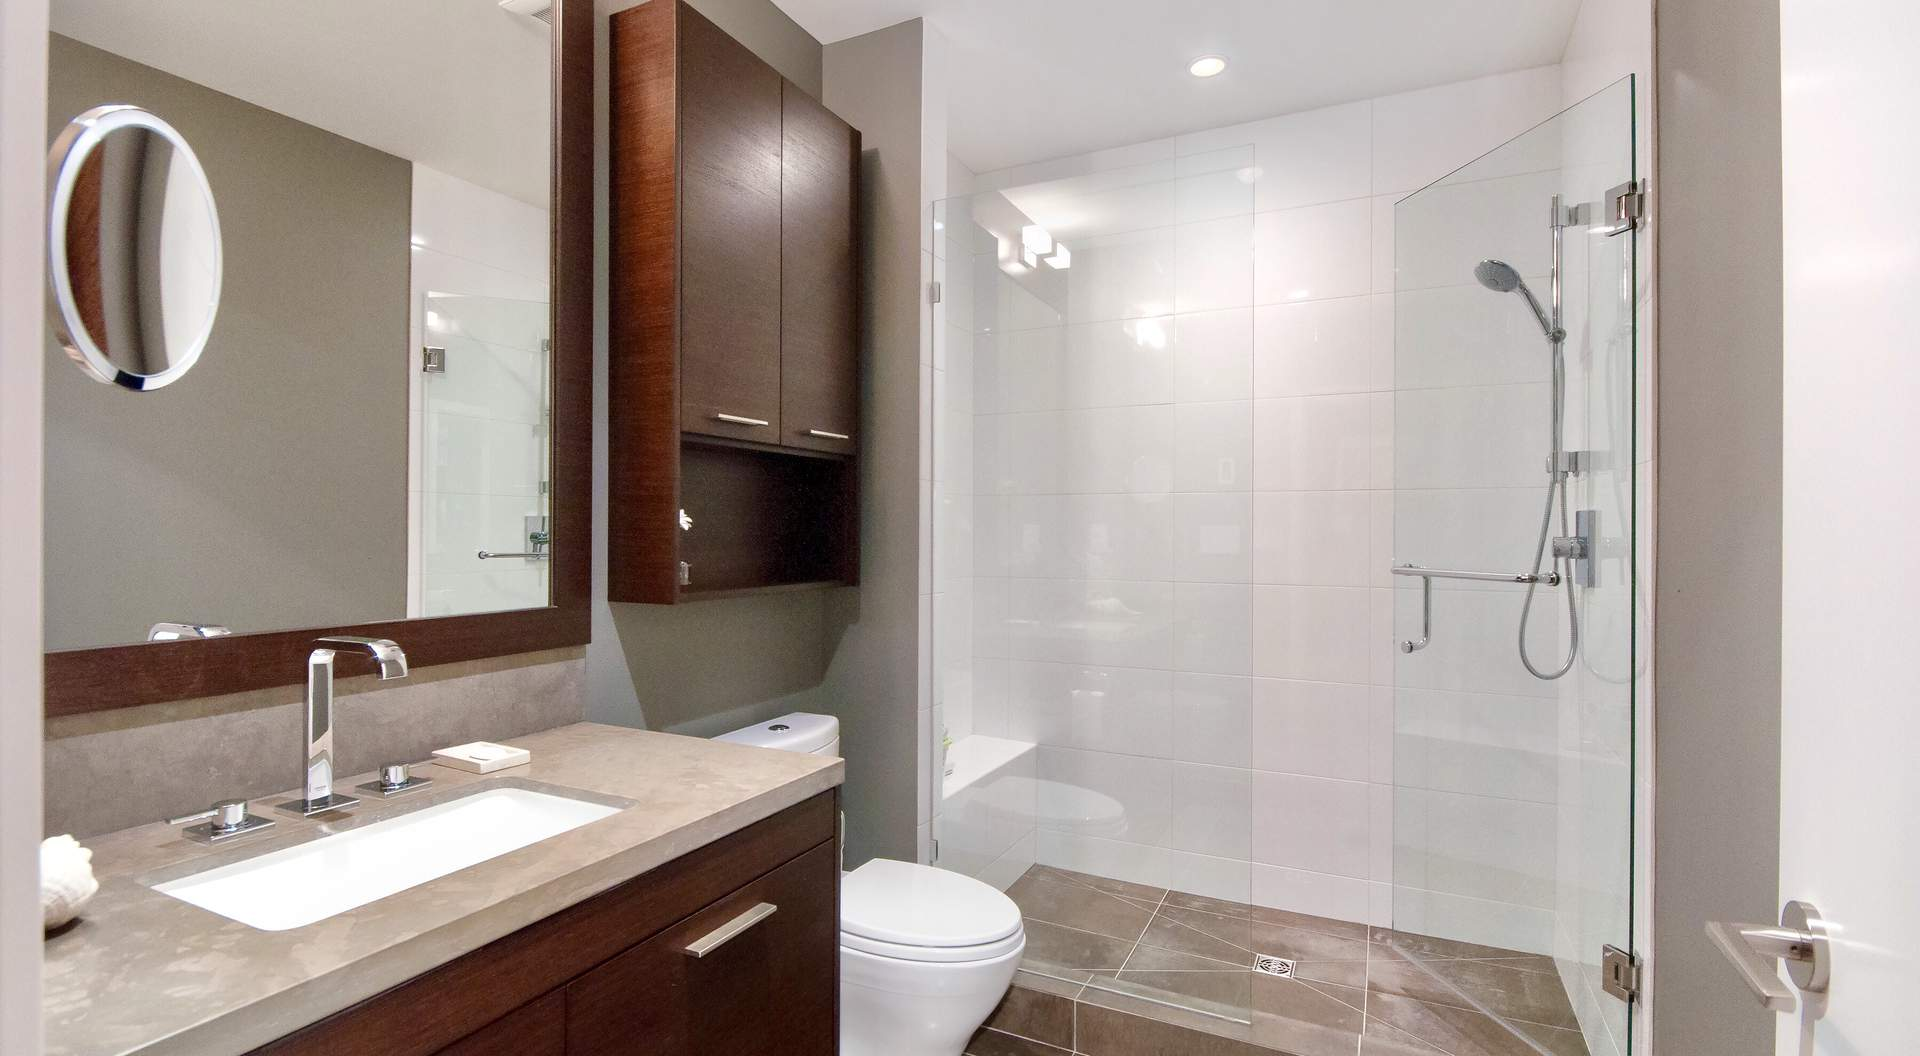 modern bathroom, wood cabinets with tan granite top, stand up shower with glass